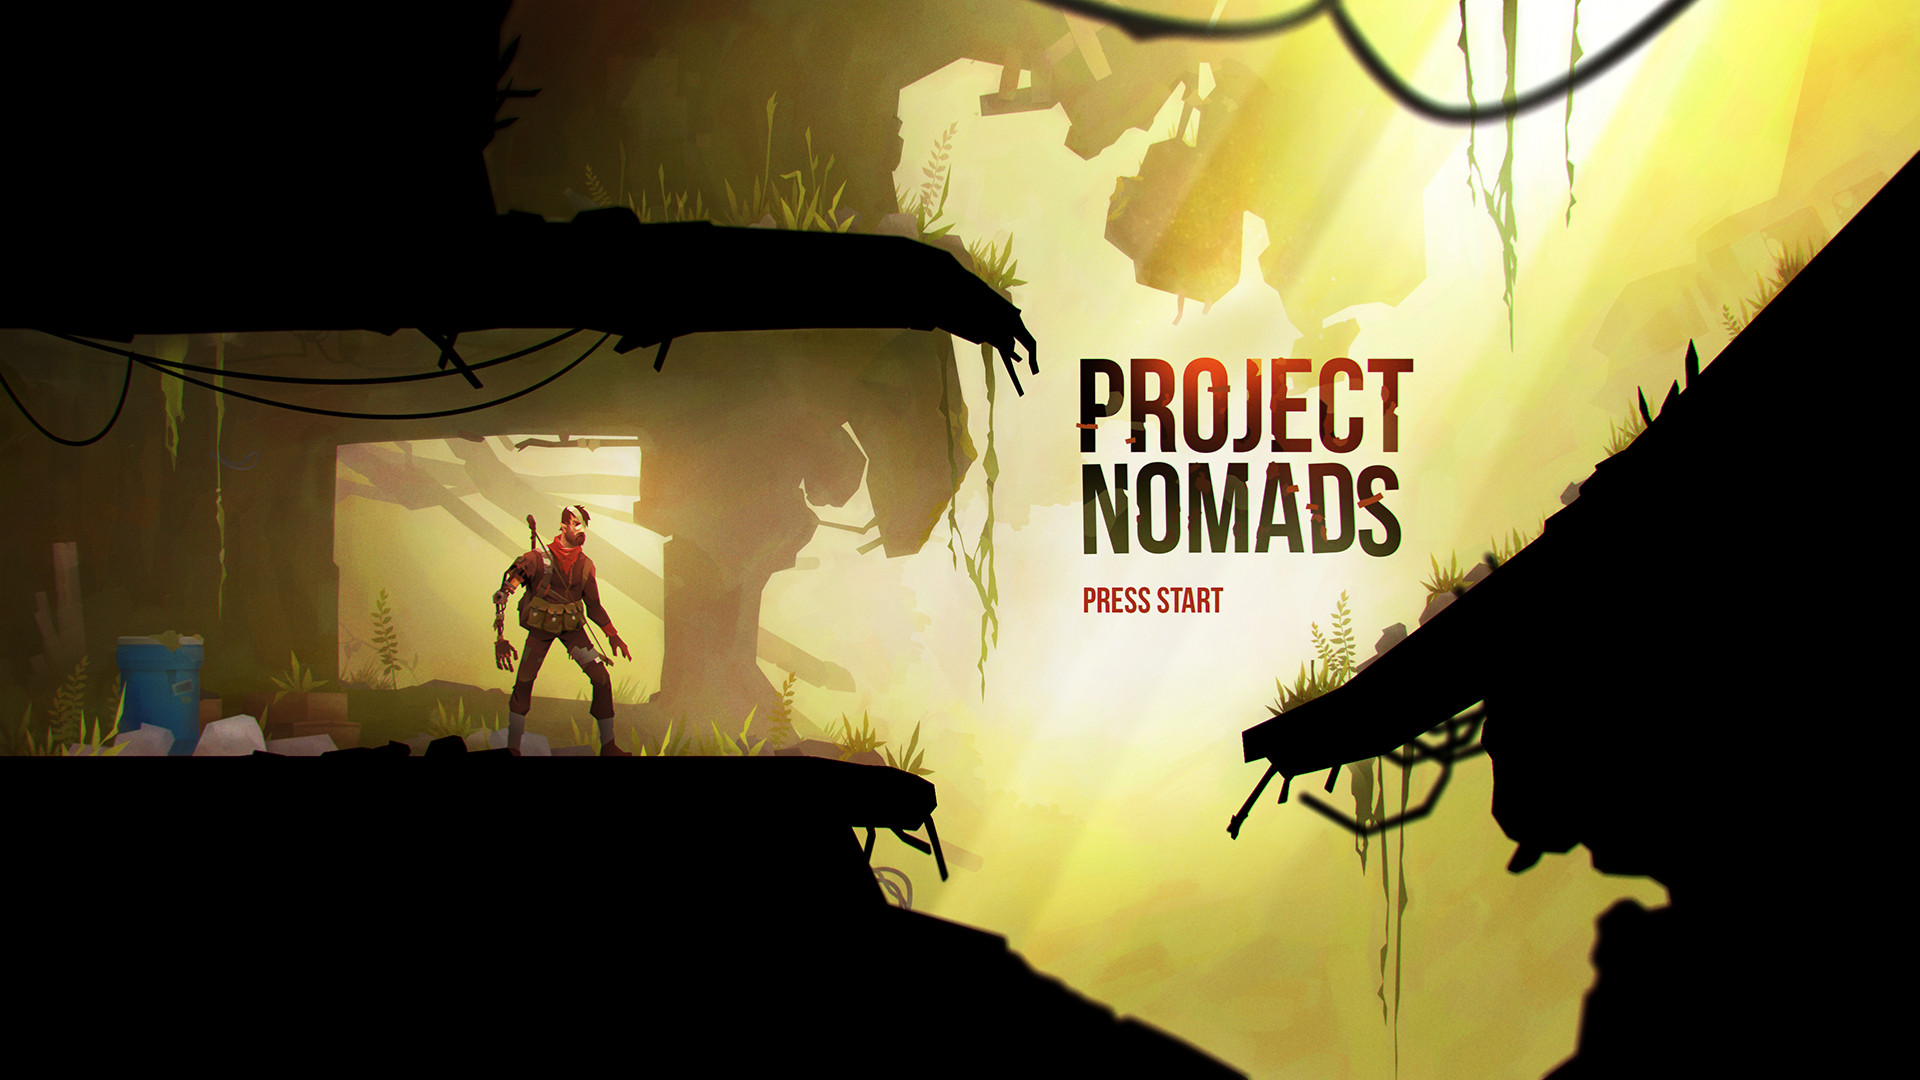 Project Nomads, Salt, False perceptions